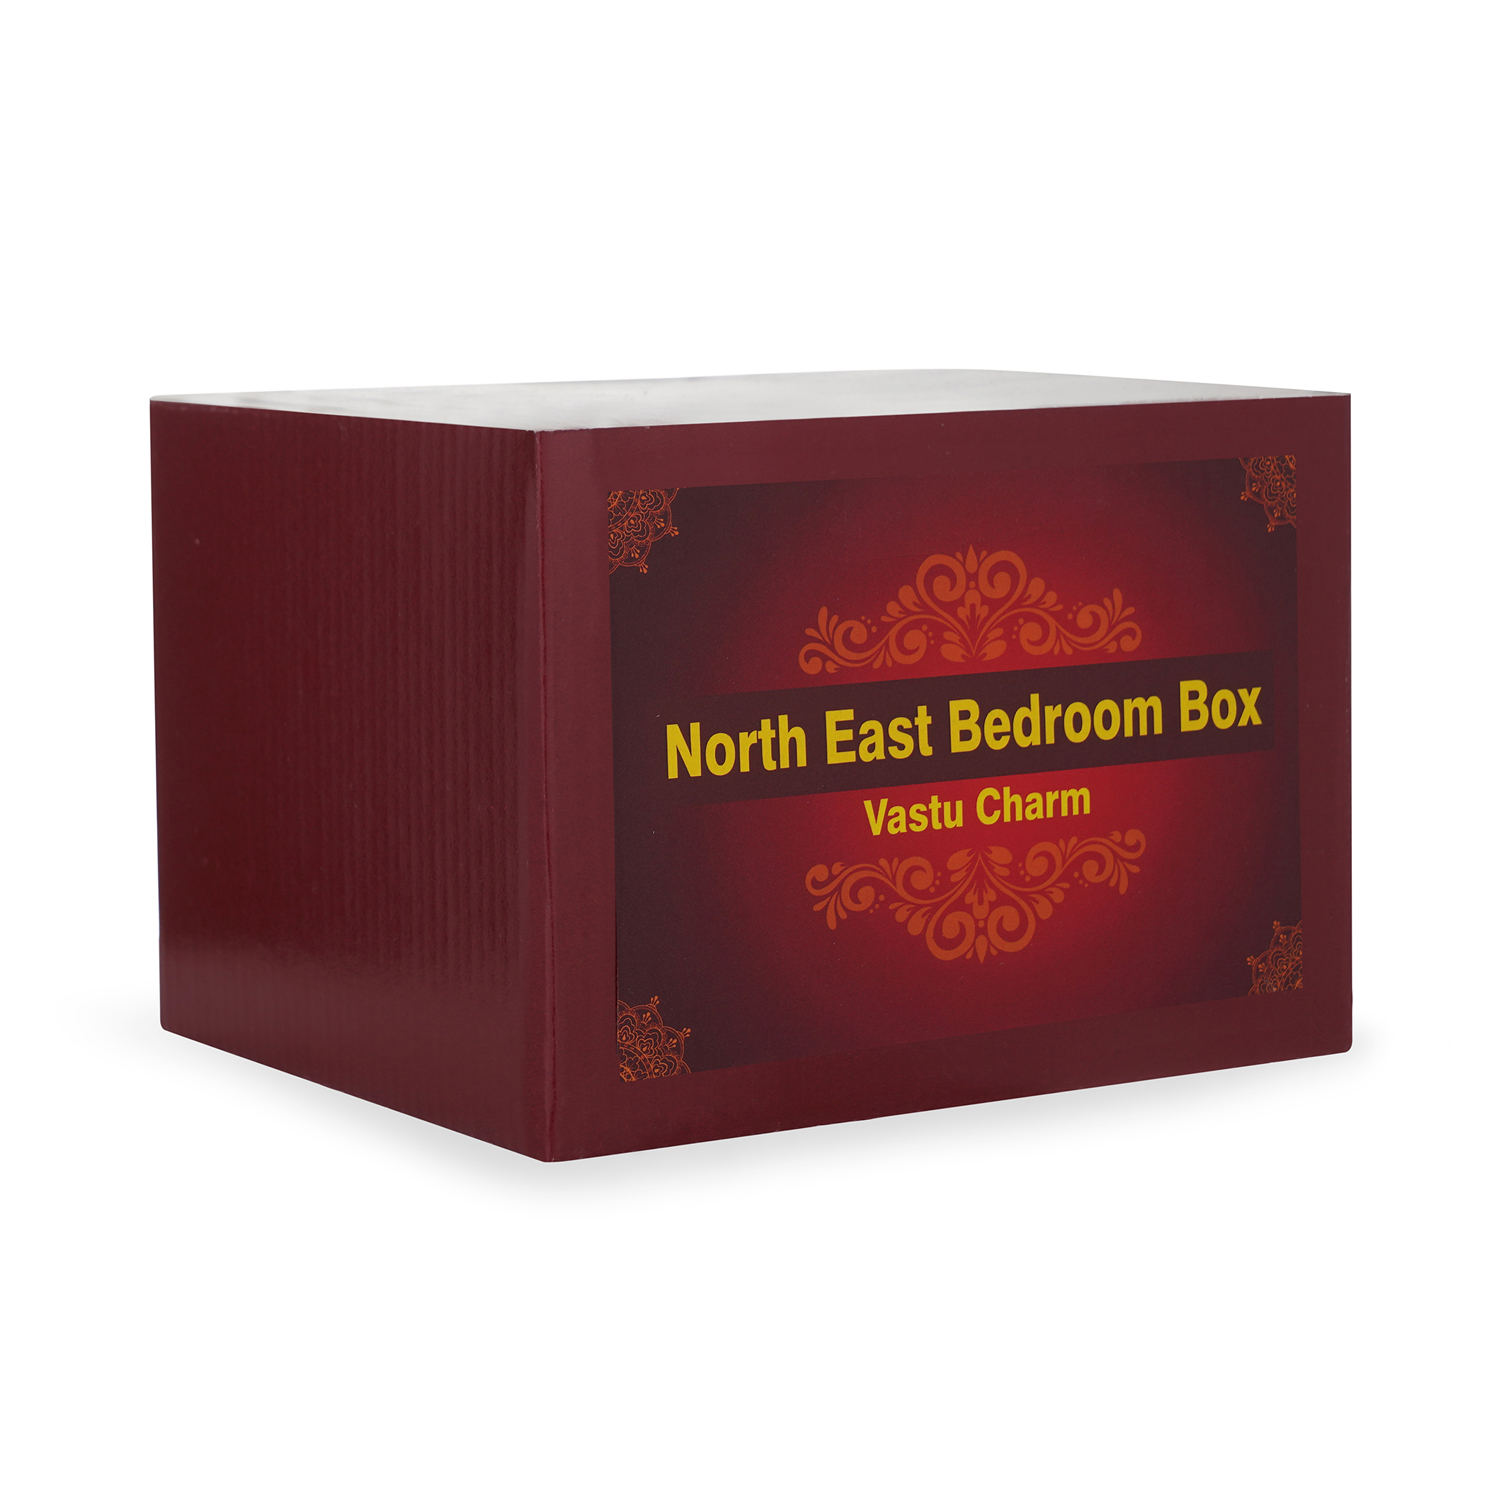 North East Bedroom Box